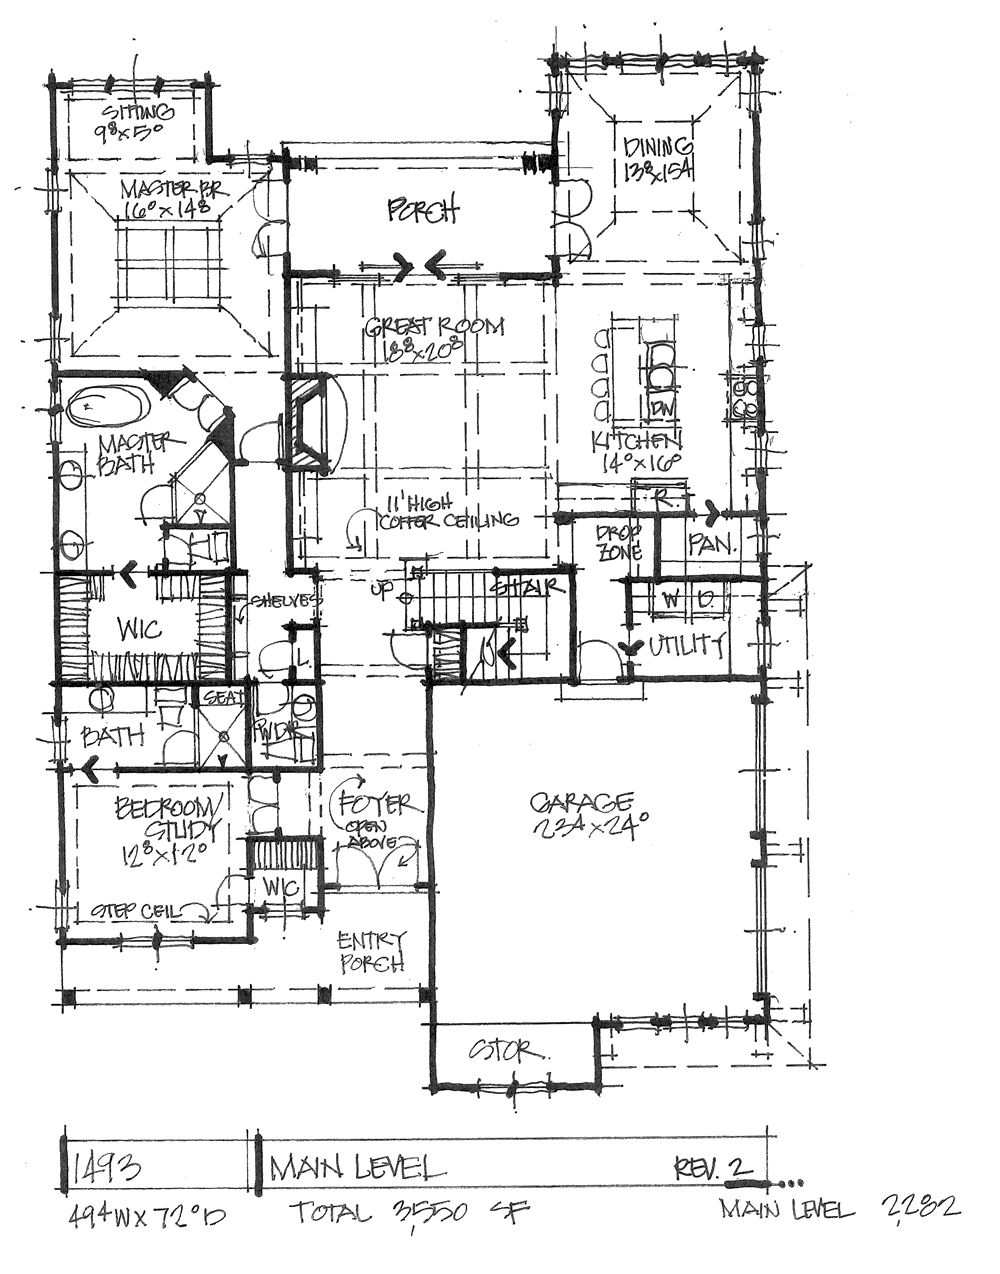 Conceptual House Plan 1493 Narrow Two Story House Plans Craftsman Floor Plans House Floor Plans